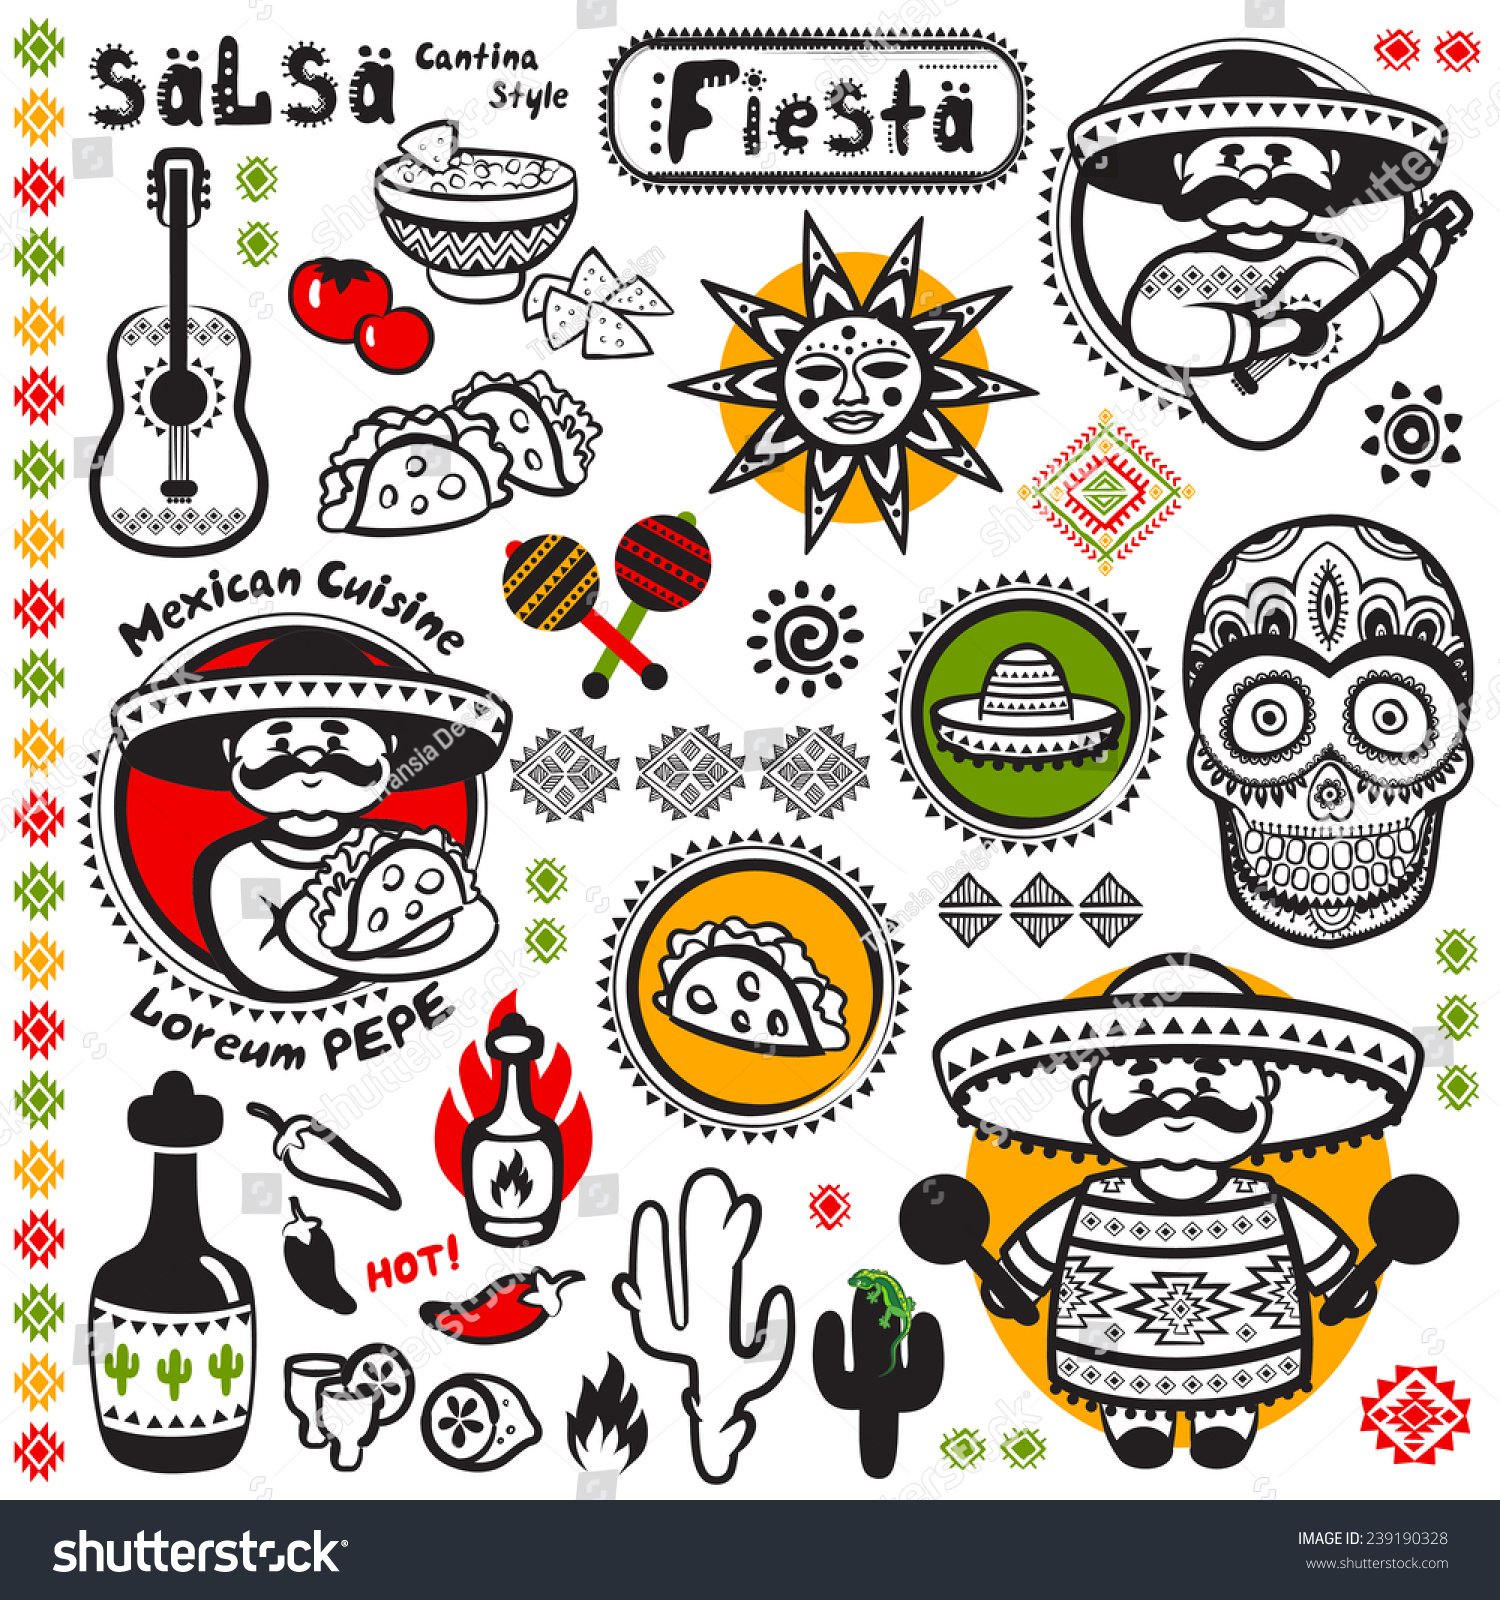 Mexican Symbols And Meanings